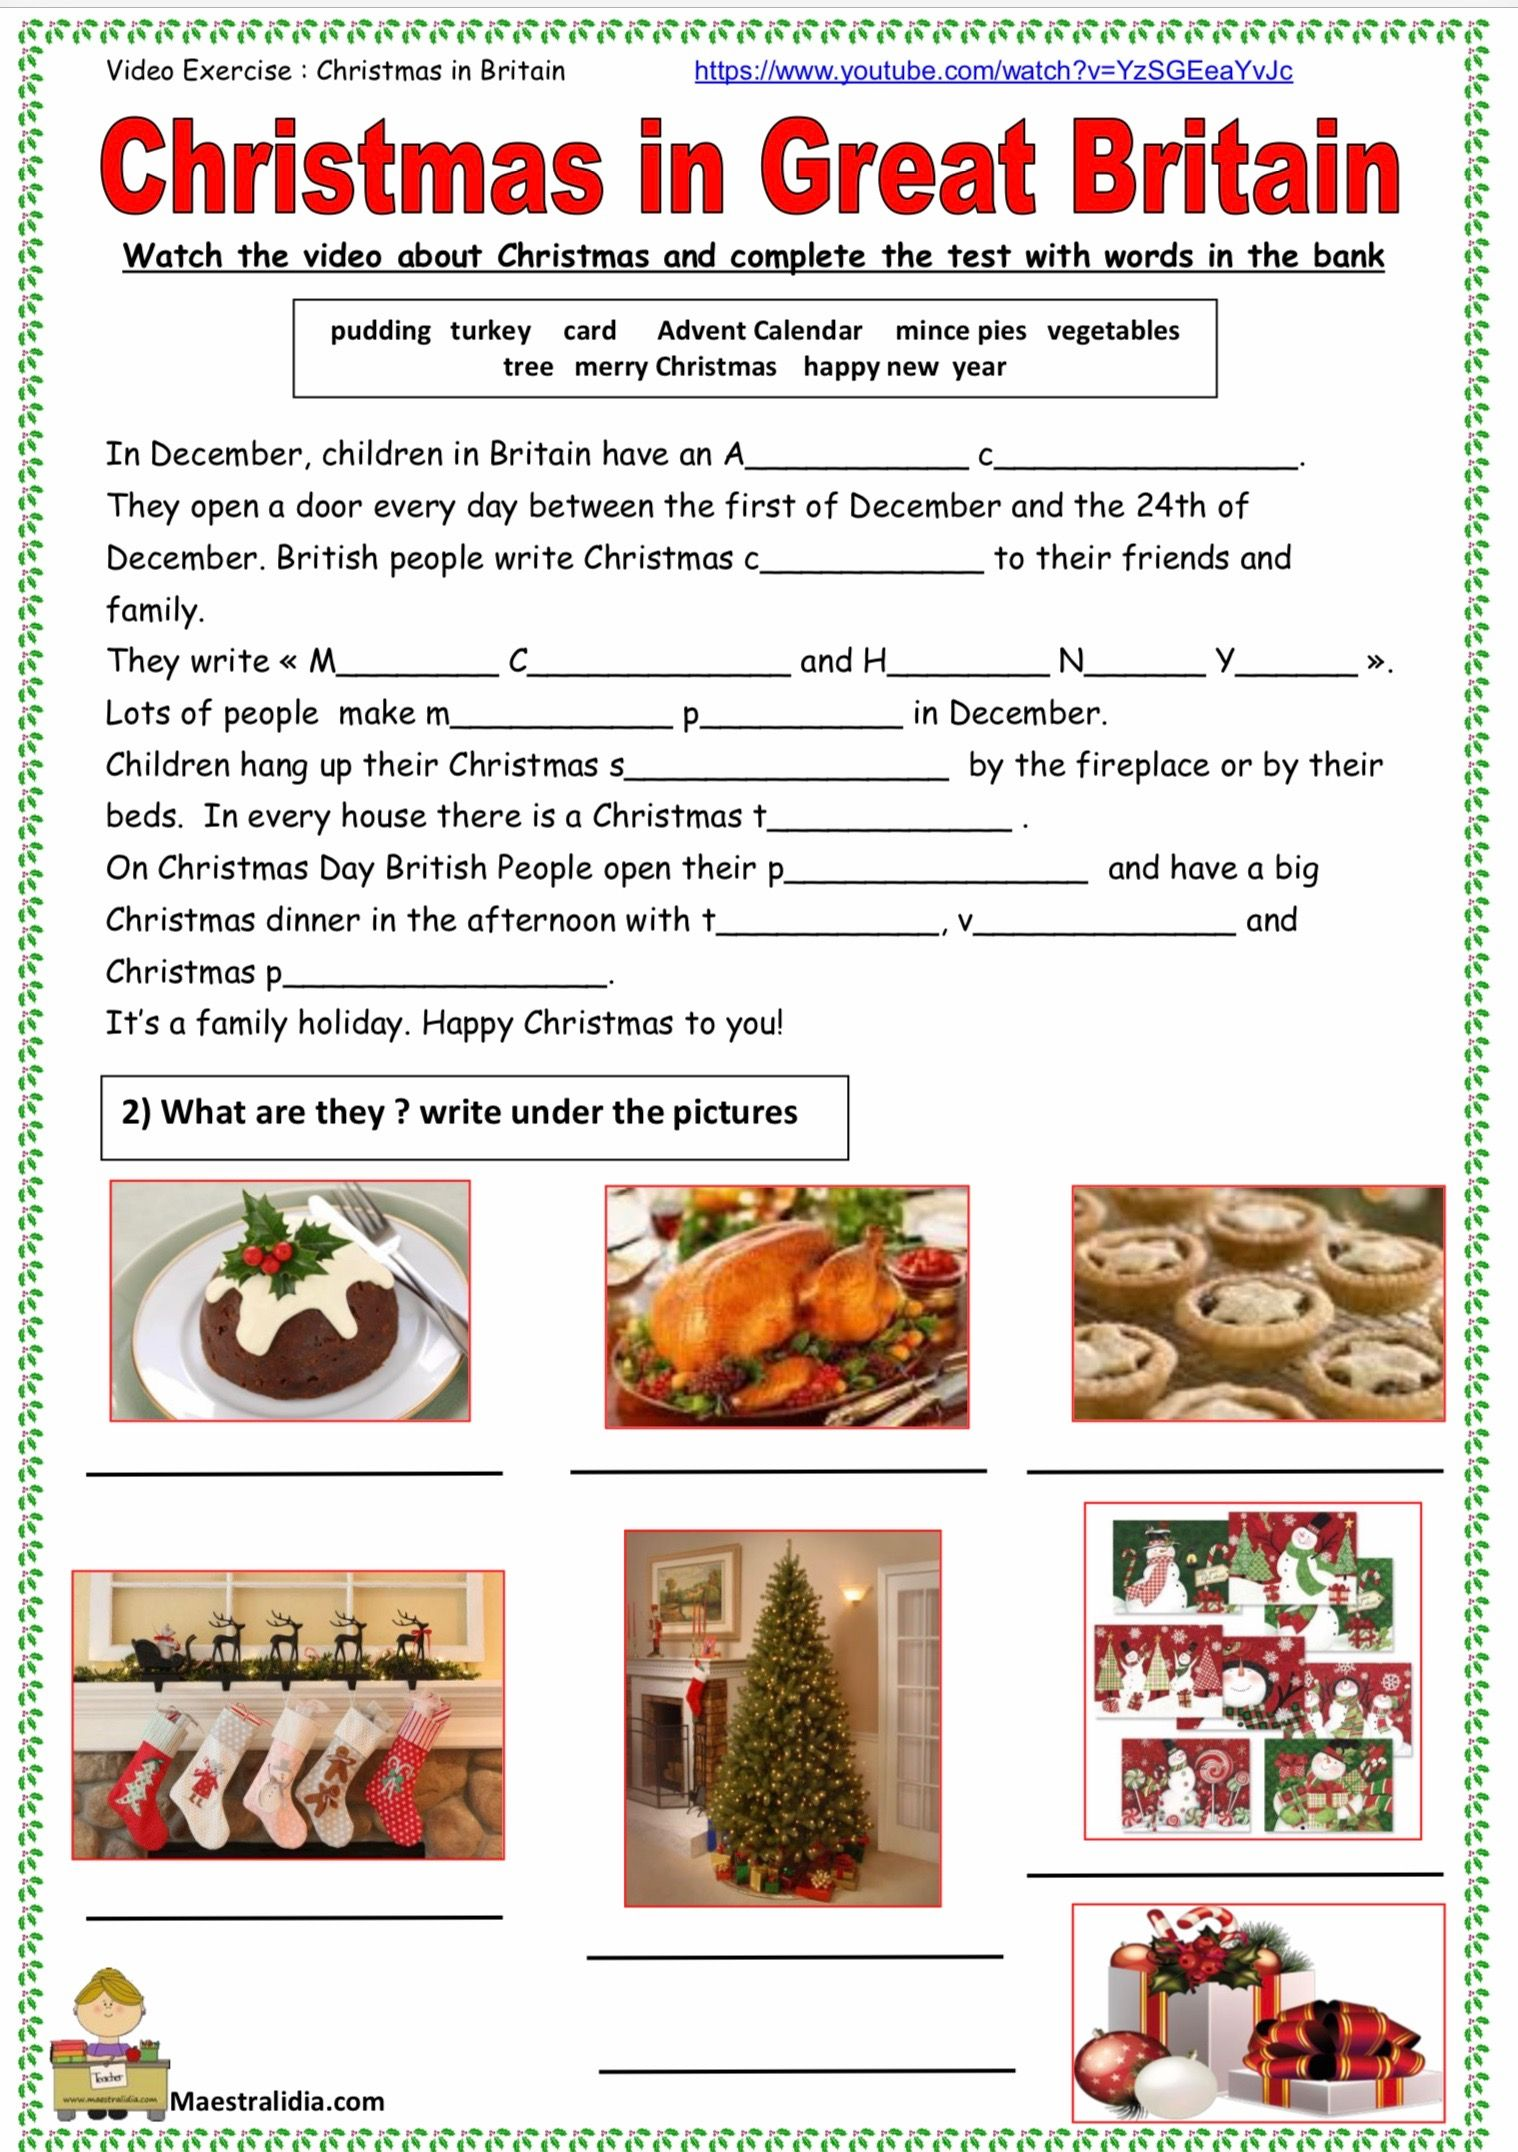 Pin By Connie Harrop On Christmas With Images